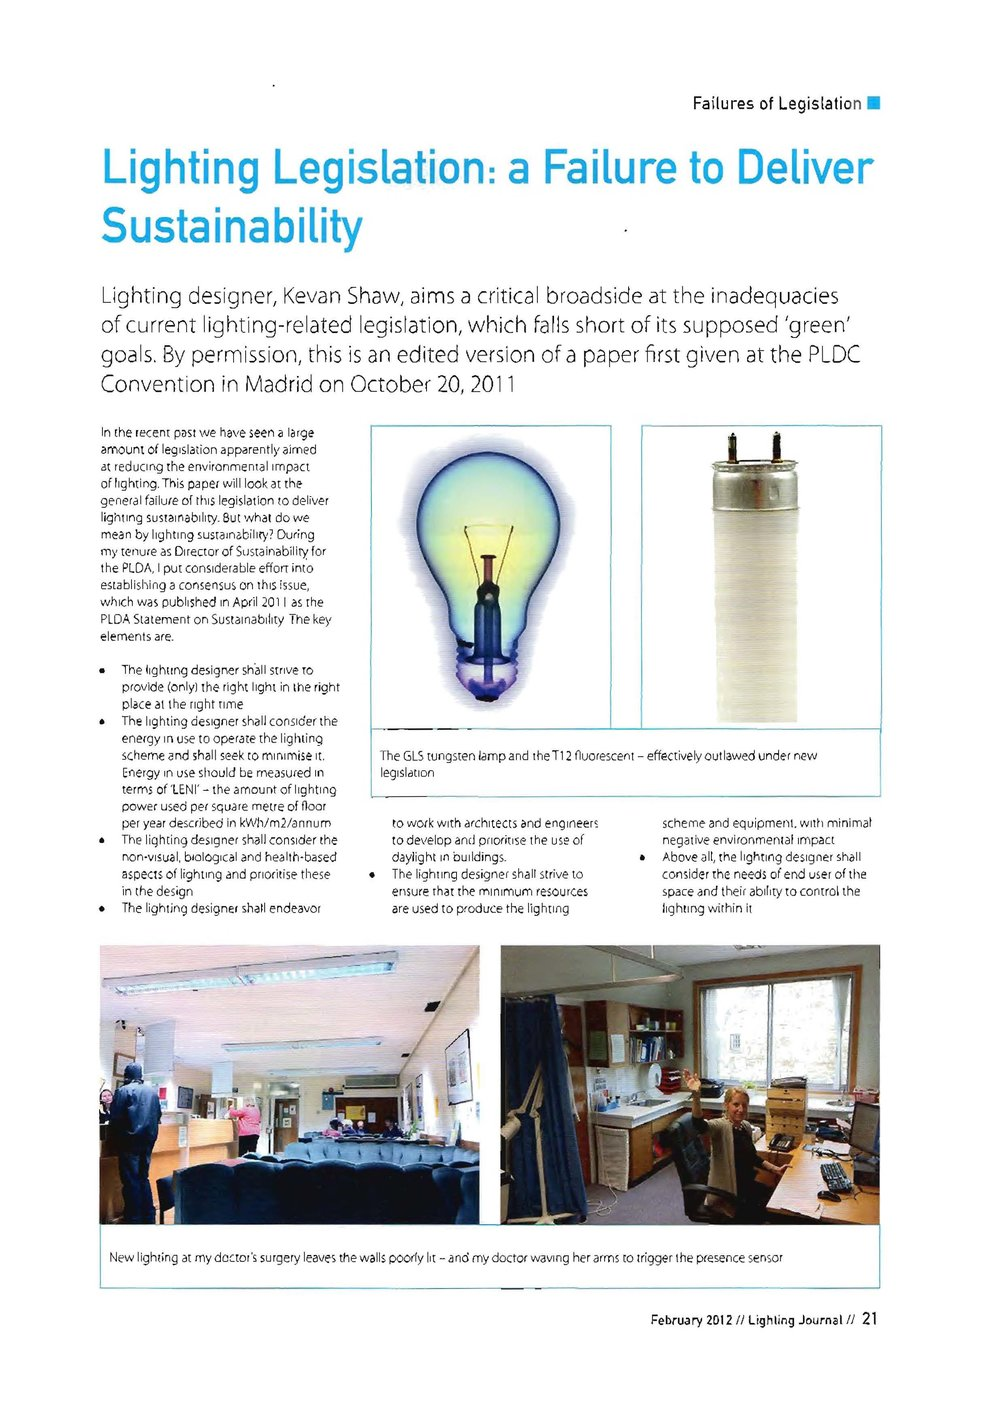 Lighting Legislation: A Failure to Deliver Sustainability